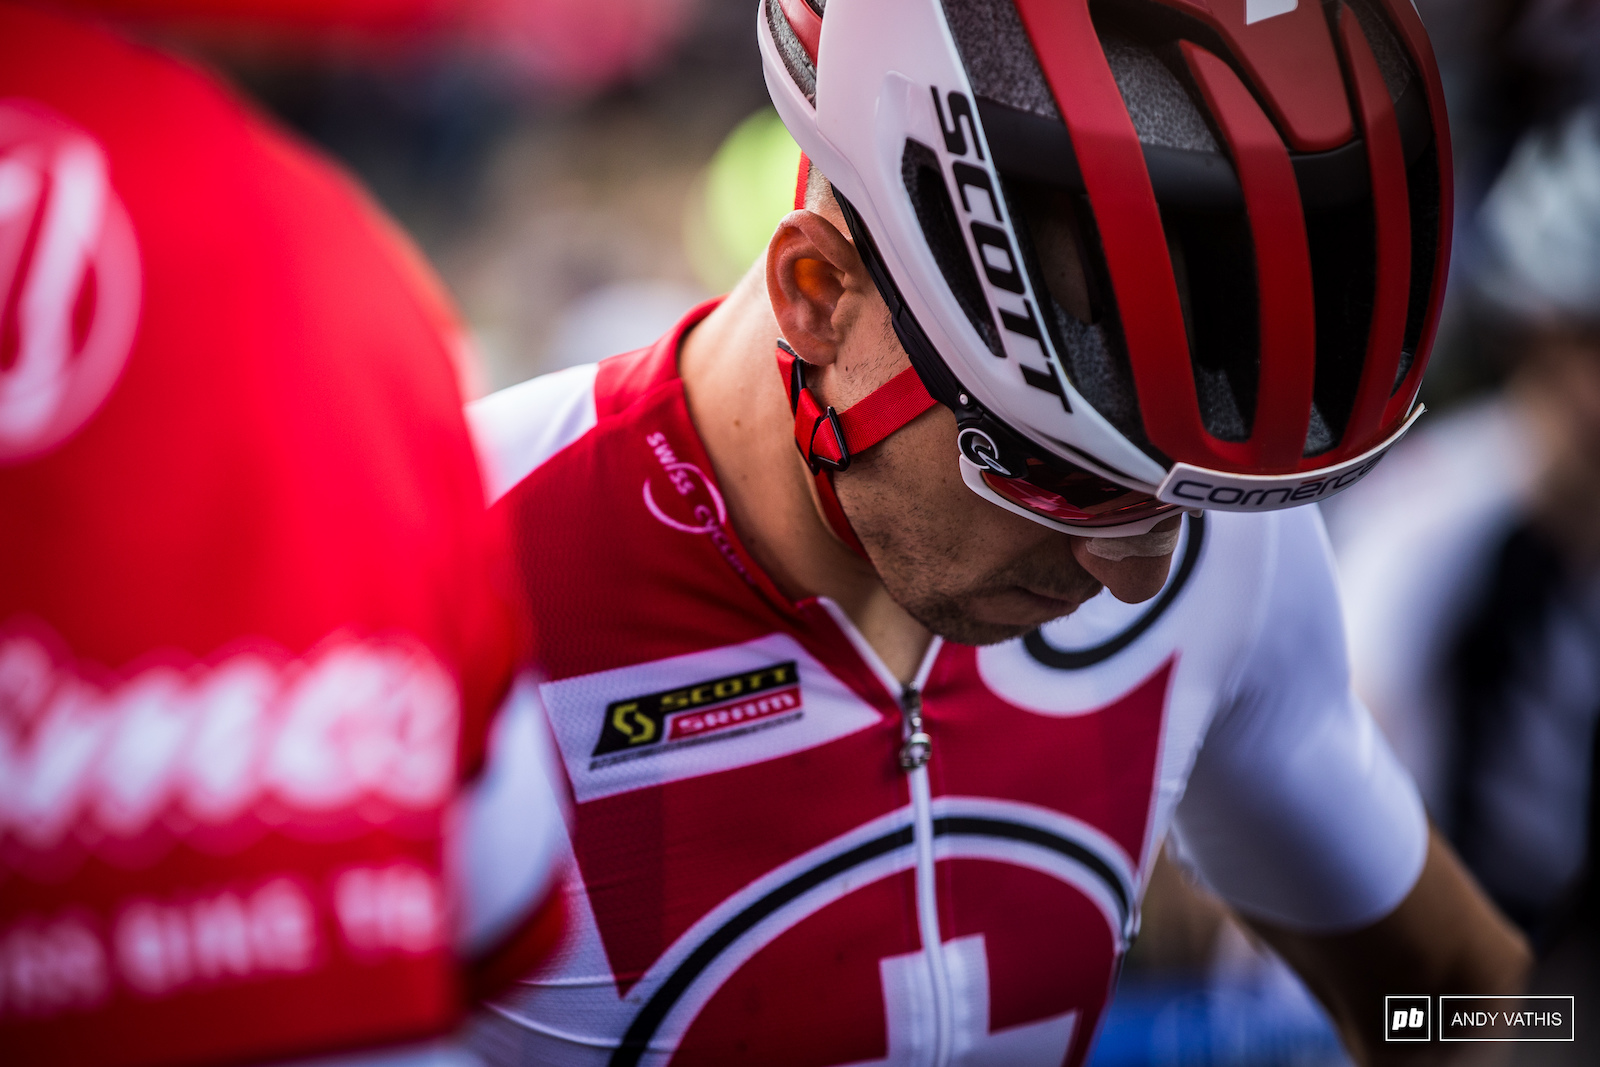 Nino Schurter is no stranger to pressure. He s the current World Champ after his win at home last year and he surely doesn t want to let go of them just yet.